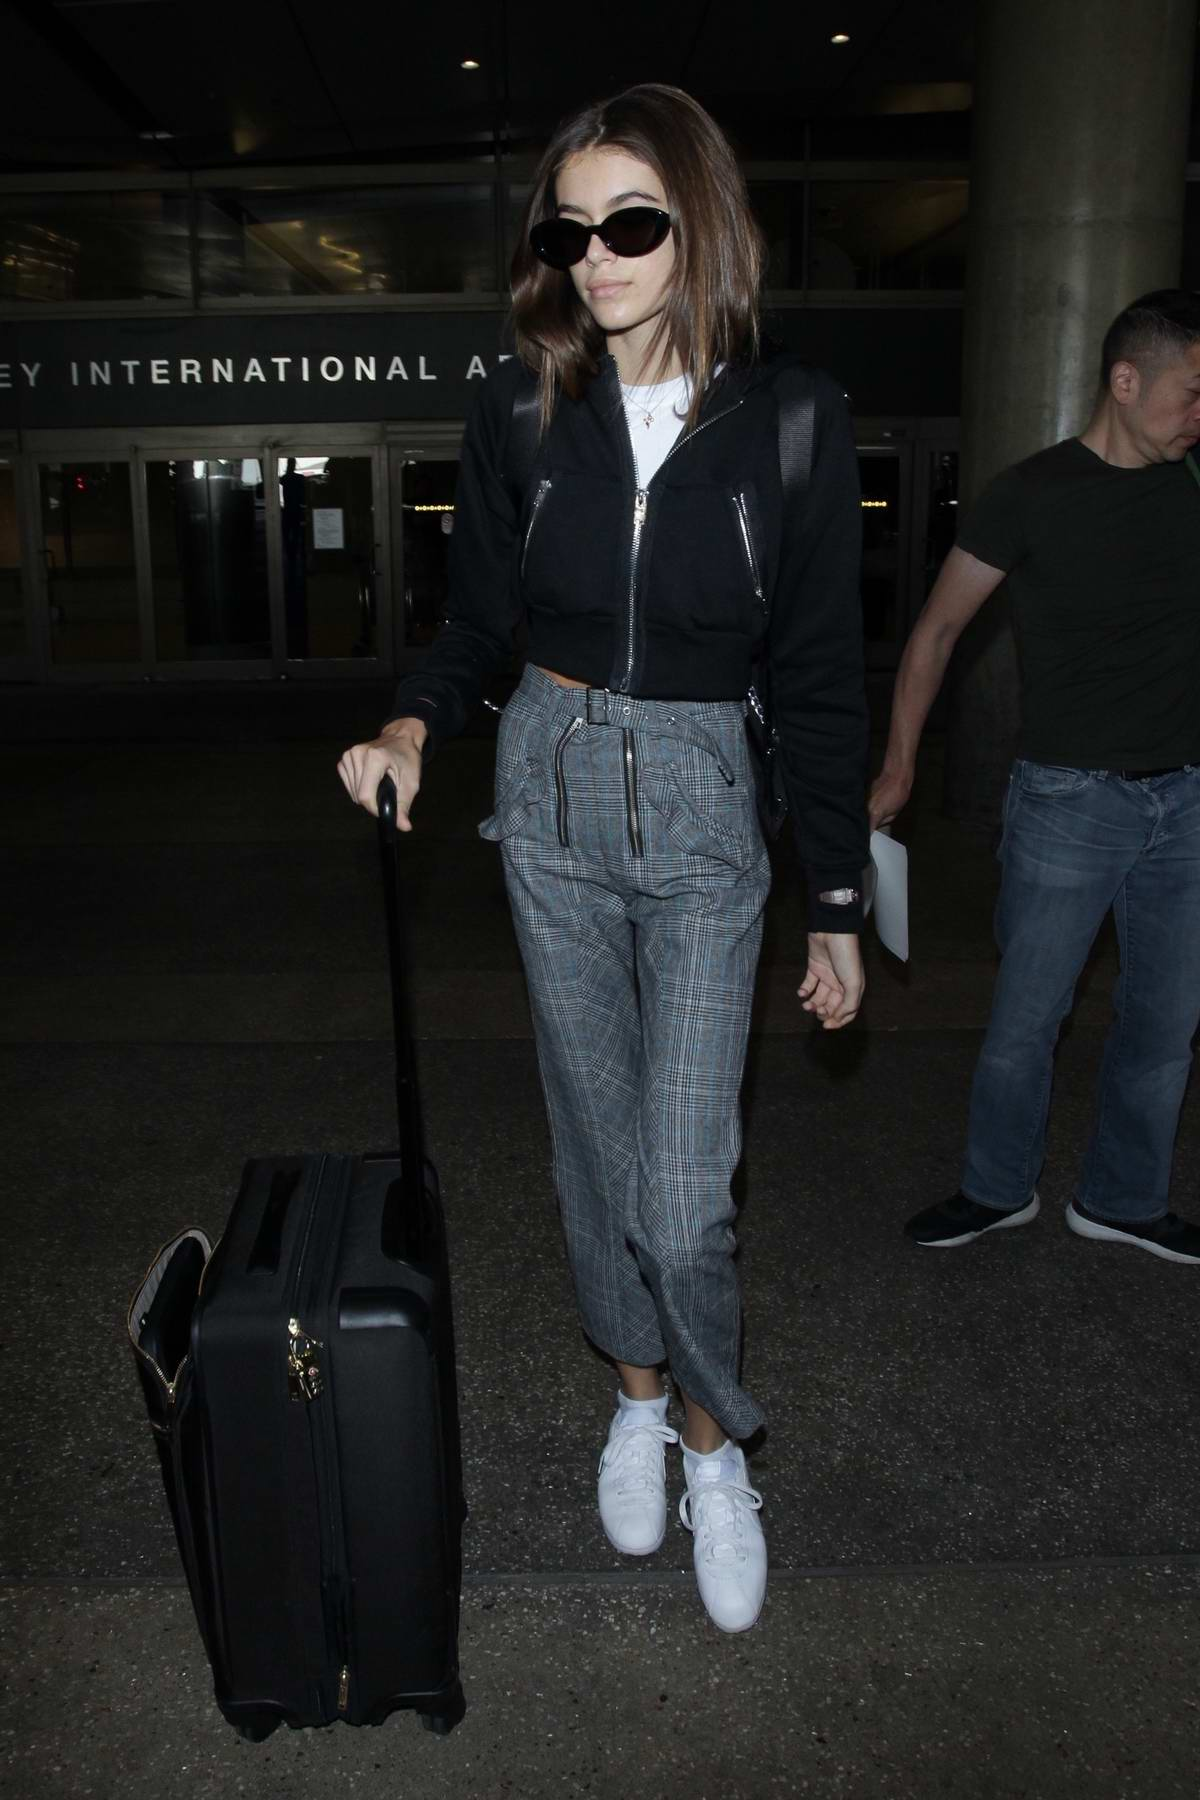 Kaia Gerber returns to Los Angeles after attending Paris Fashion Week